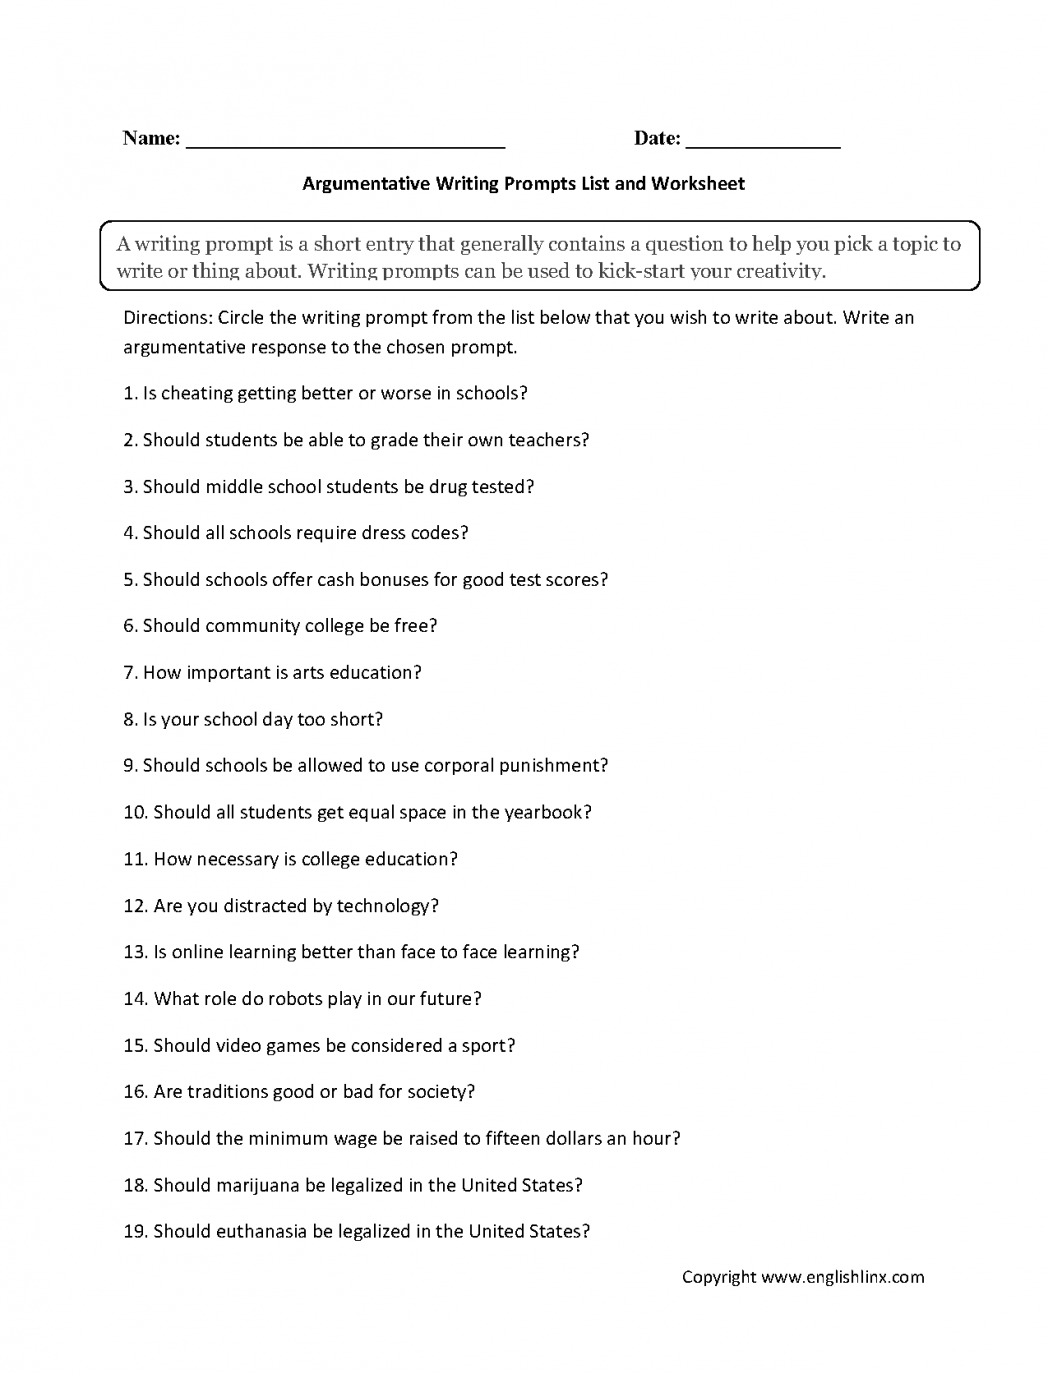 002 Essay Writing Prompts Example Argument Goal Blockety Co For College Argumentative List Work High School Students Adults 5th Grade Middle Elementary 6th 9th Formidable Narrative 5 Paragraph Full